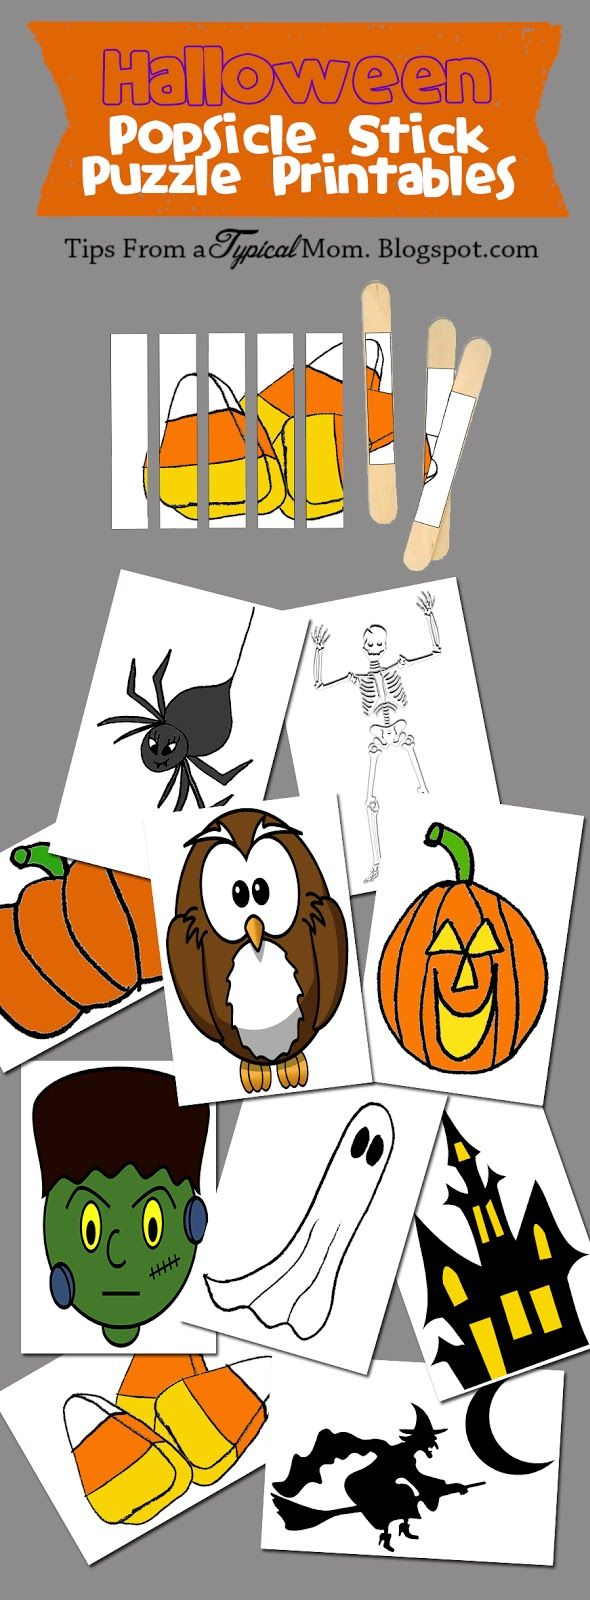 Tips from a Typical Mom: Popsicle Stick October Puzzles~ Free Printables!